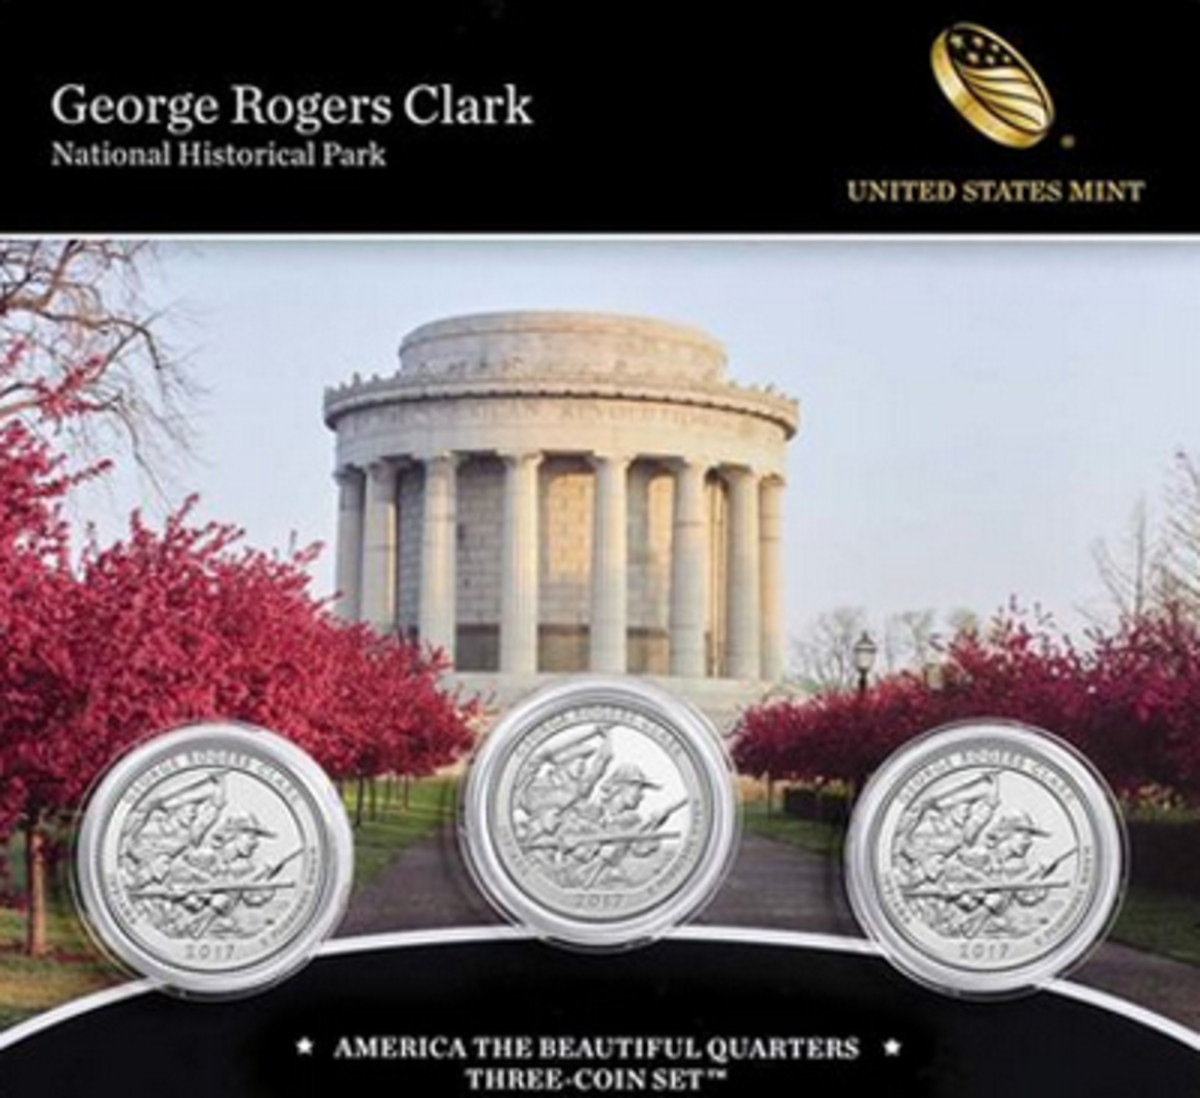 The final 2017-dated quarter in the America the Beautiful series honors George Rogers Clark National Historical Park.